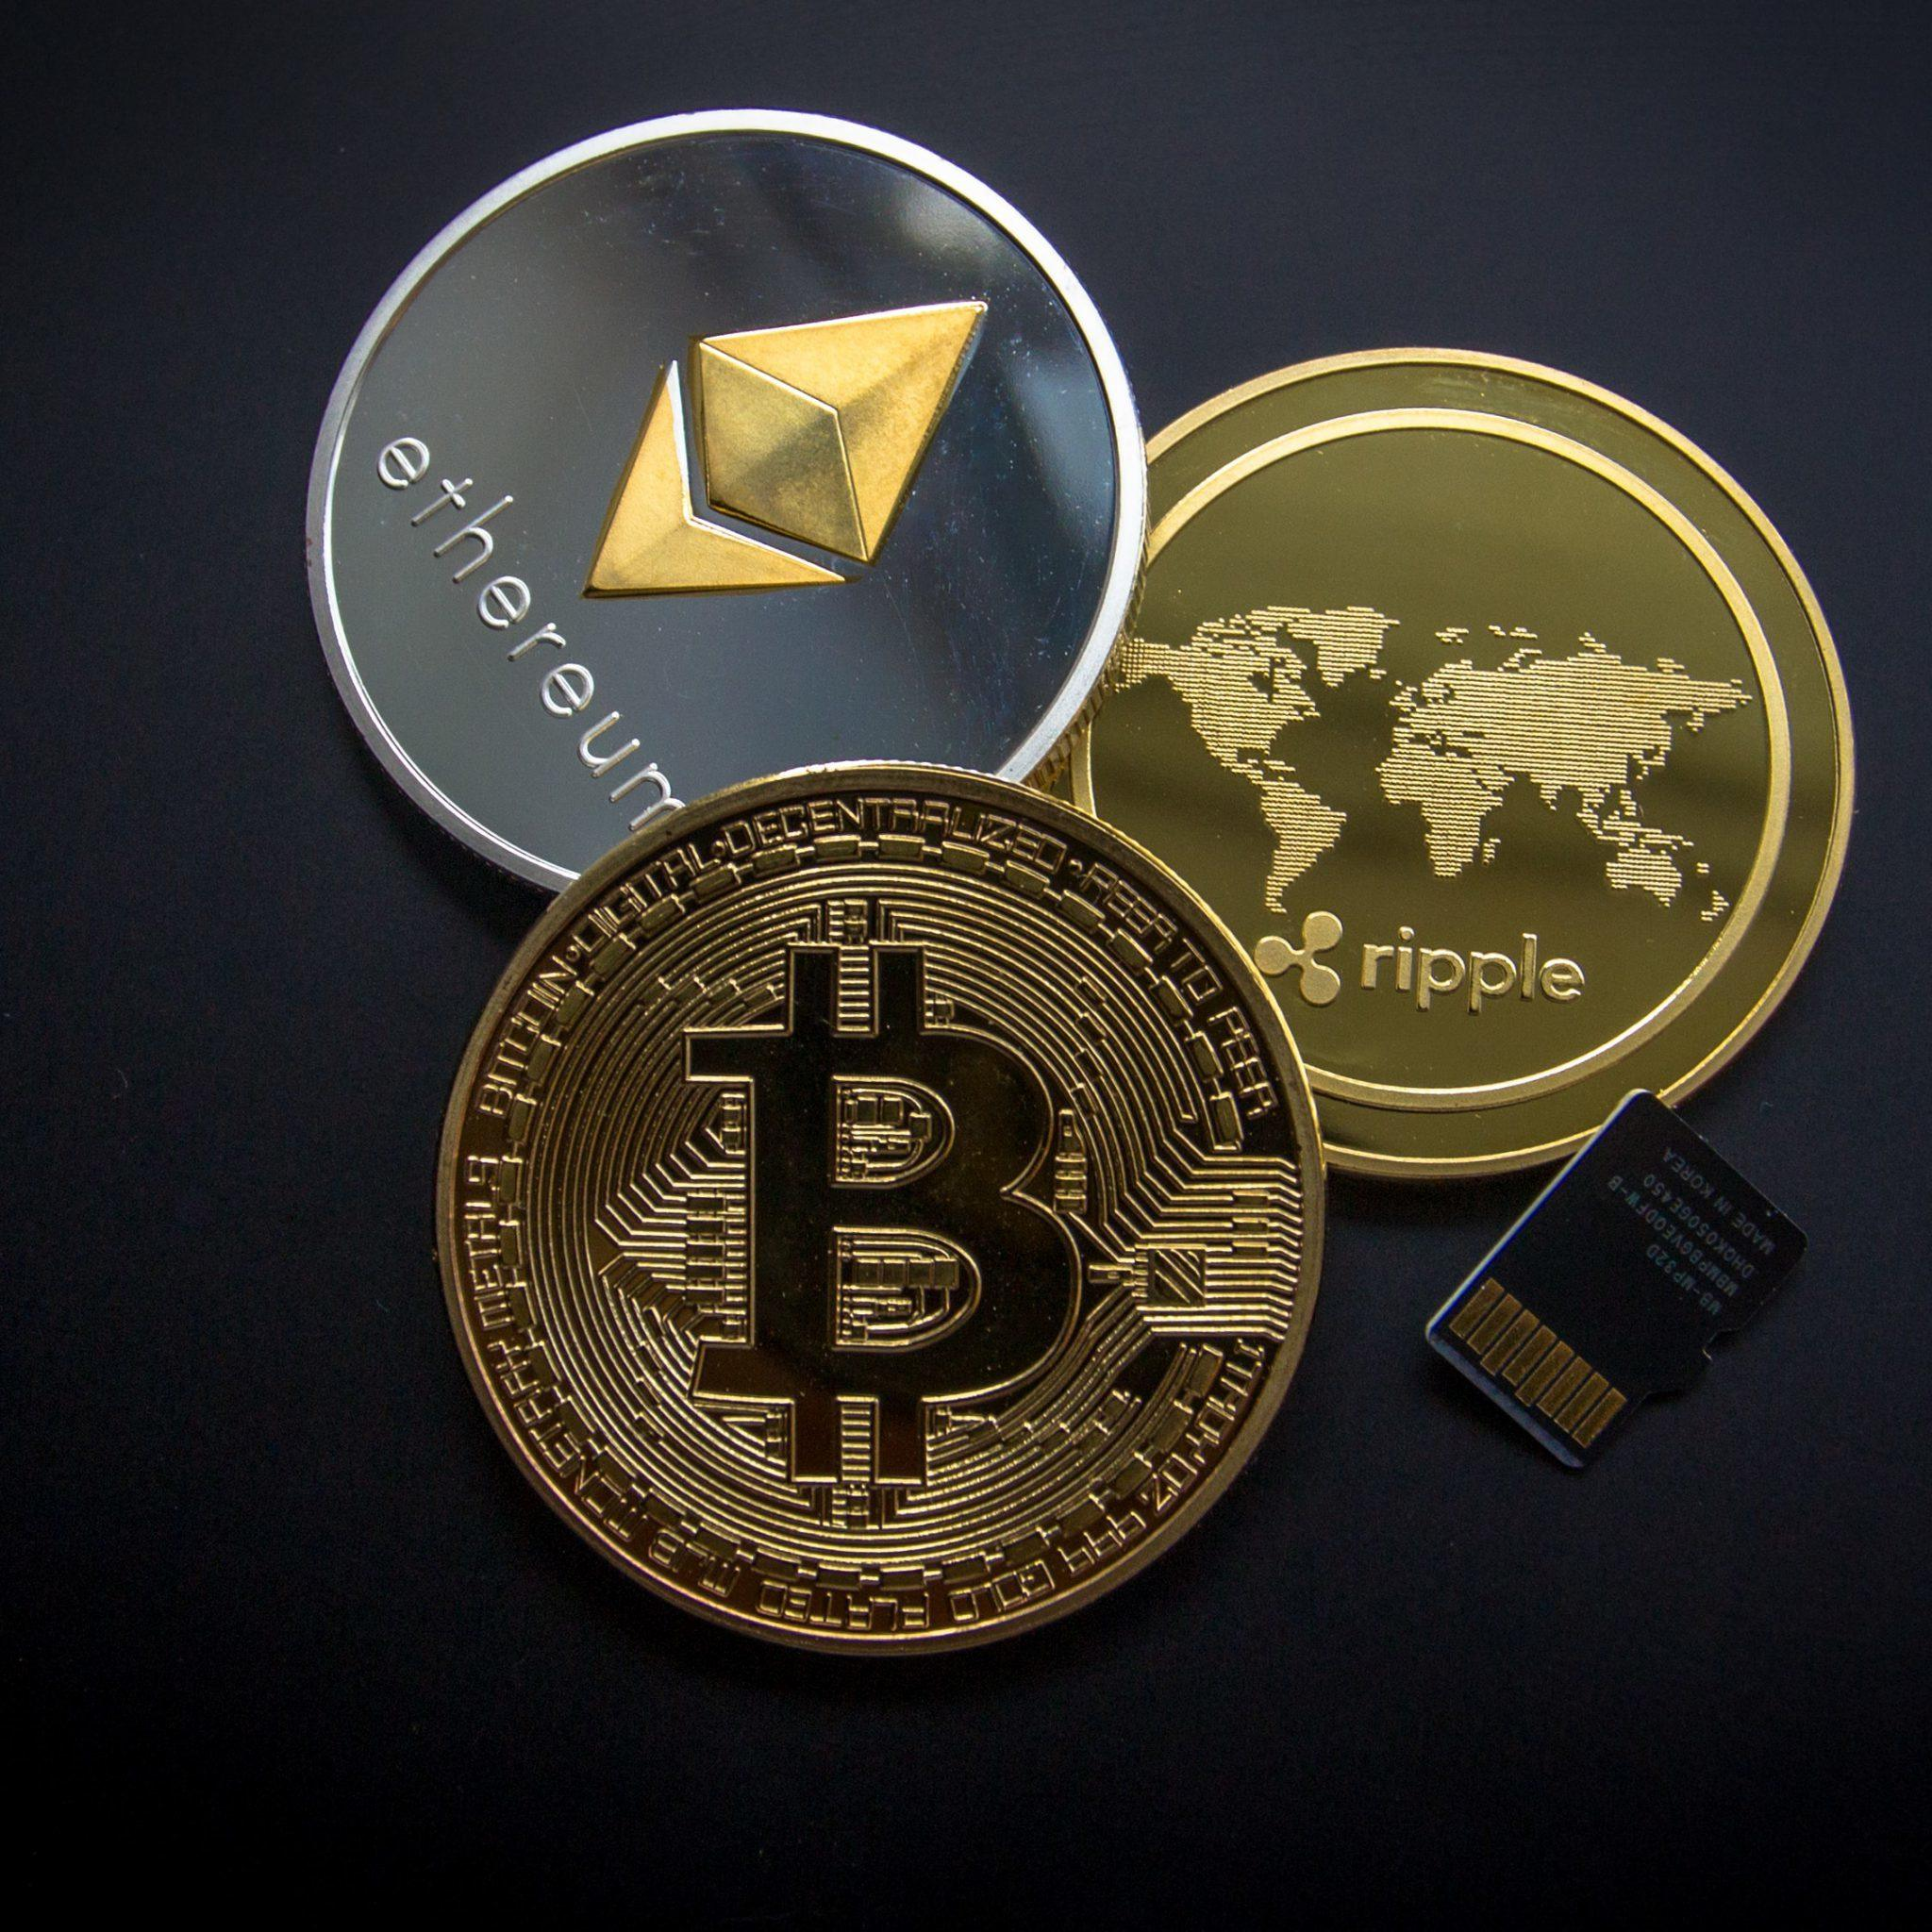 A graphic showing tokens of the most popular cryptocurrencies online.